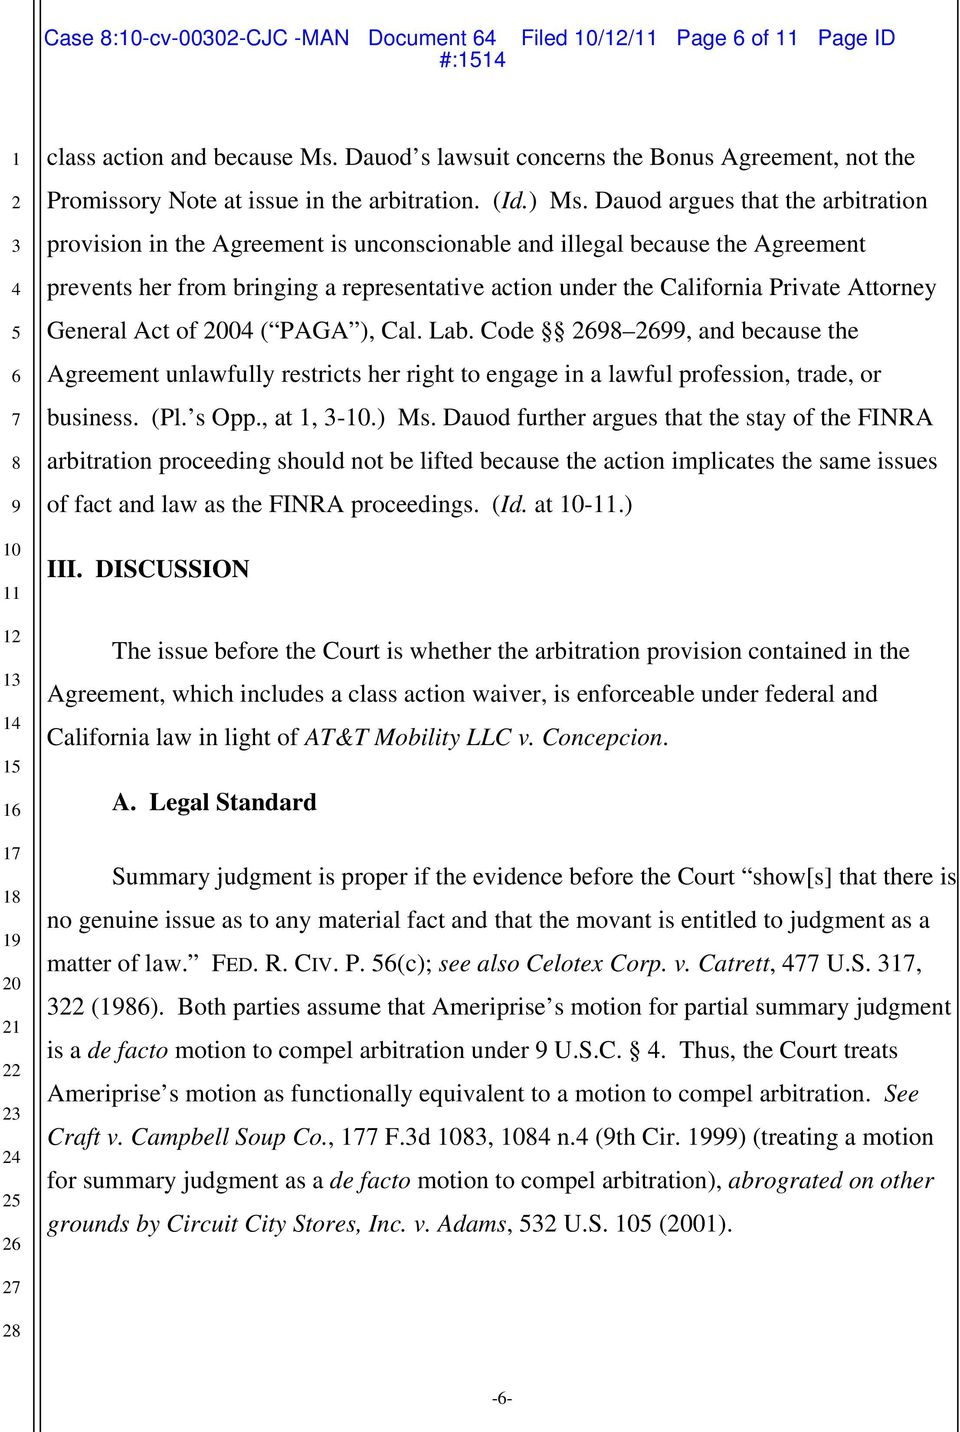 Dauod argues that the arbitration provision in the Agreement is unconscionable and illegal because the Agreement prevents her from bringing a representative action under the California Private